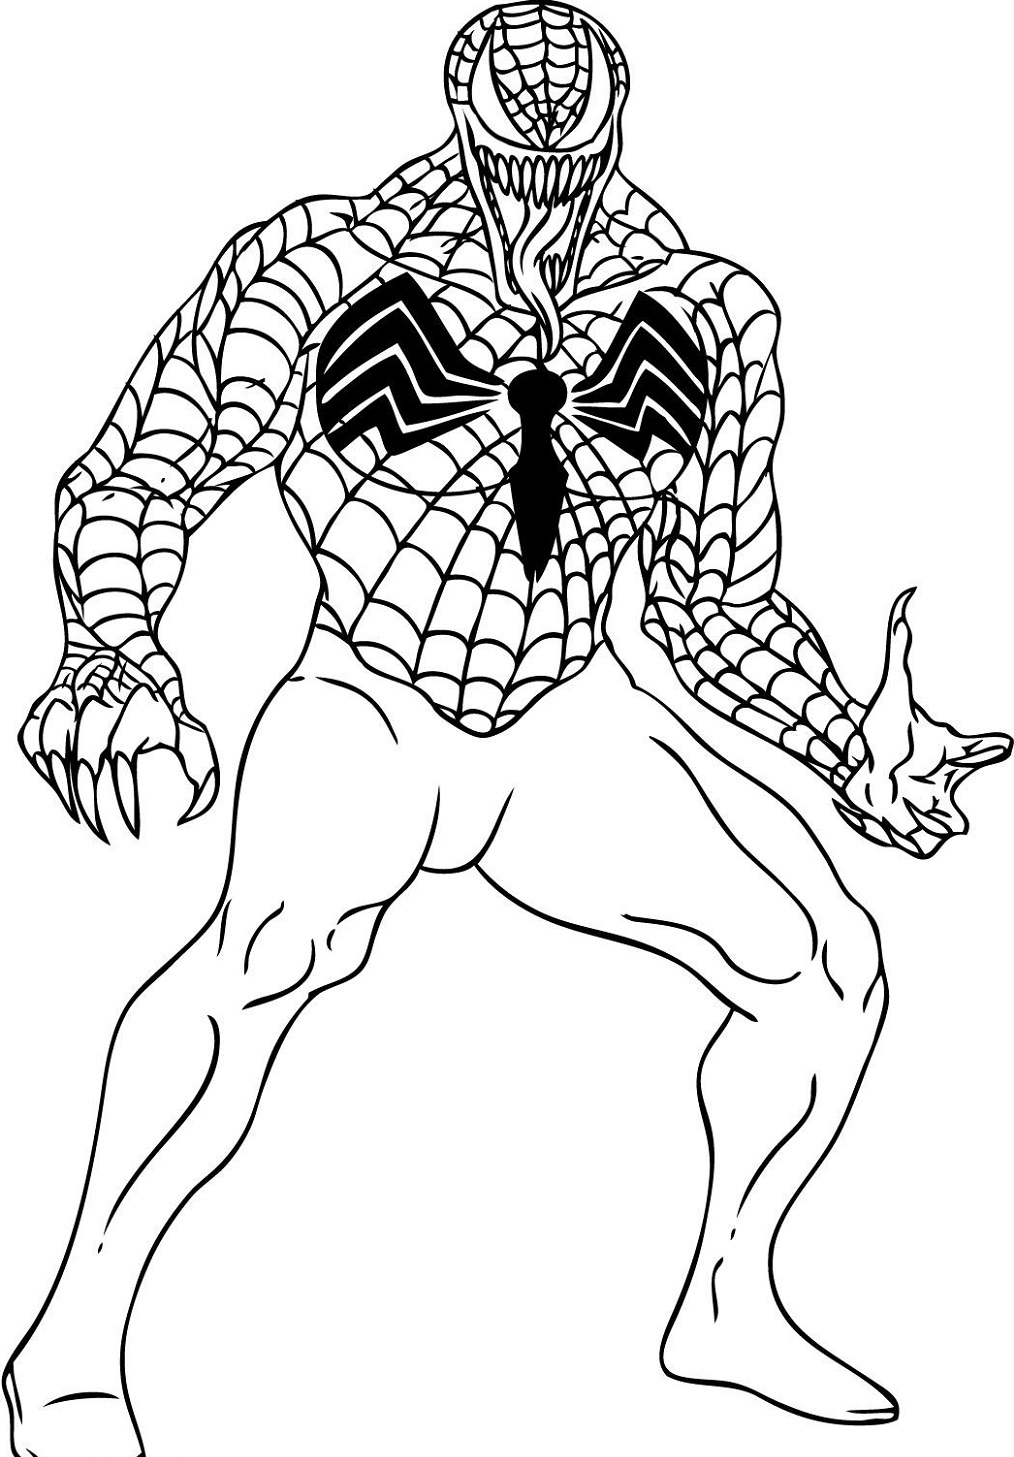 coloring spiderman spiderman coloring pages coloring pages to print spiderman coloring